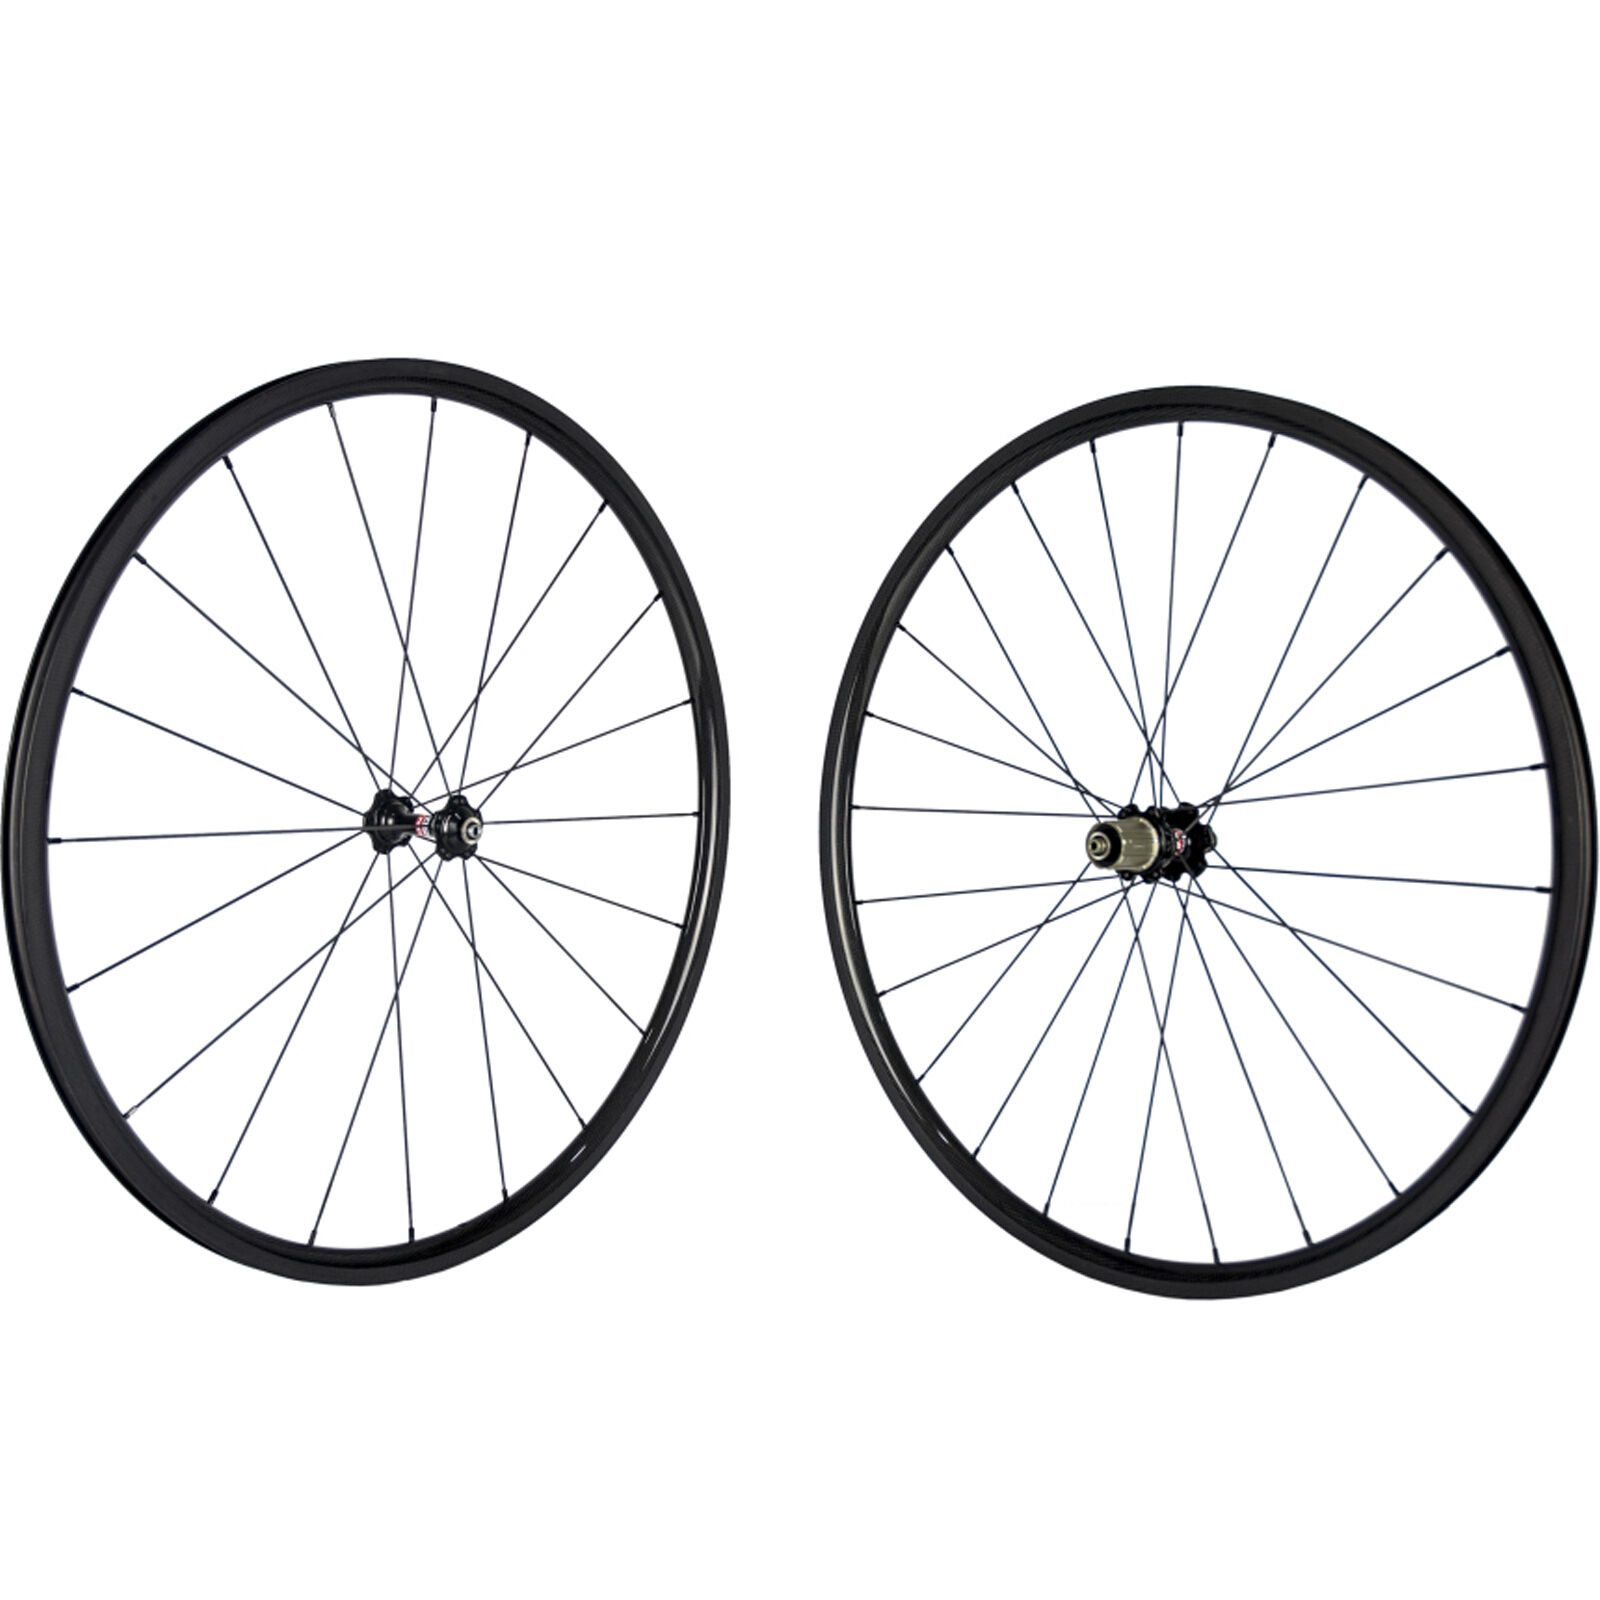 24mm Carbon Clincher Road Wheelset 23mm Wide Carbon Bike Wheels 271 Hub Bicycle